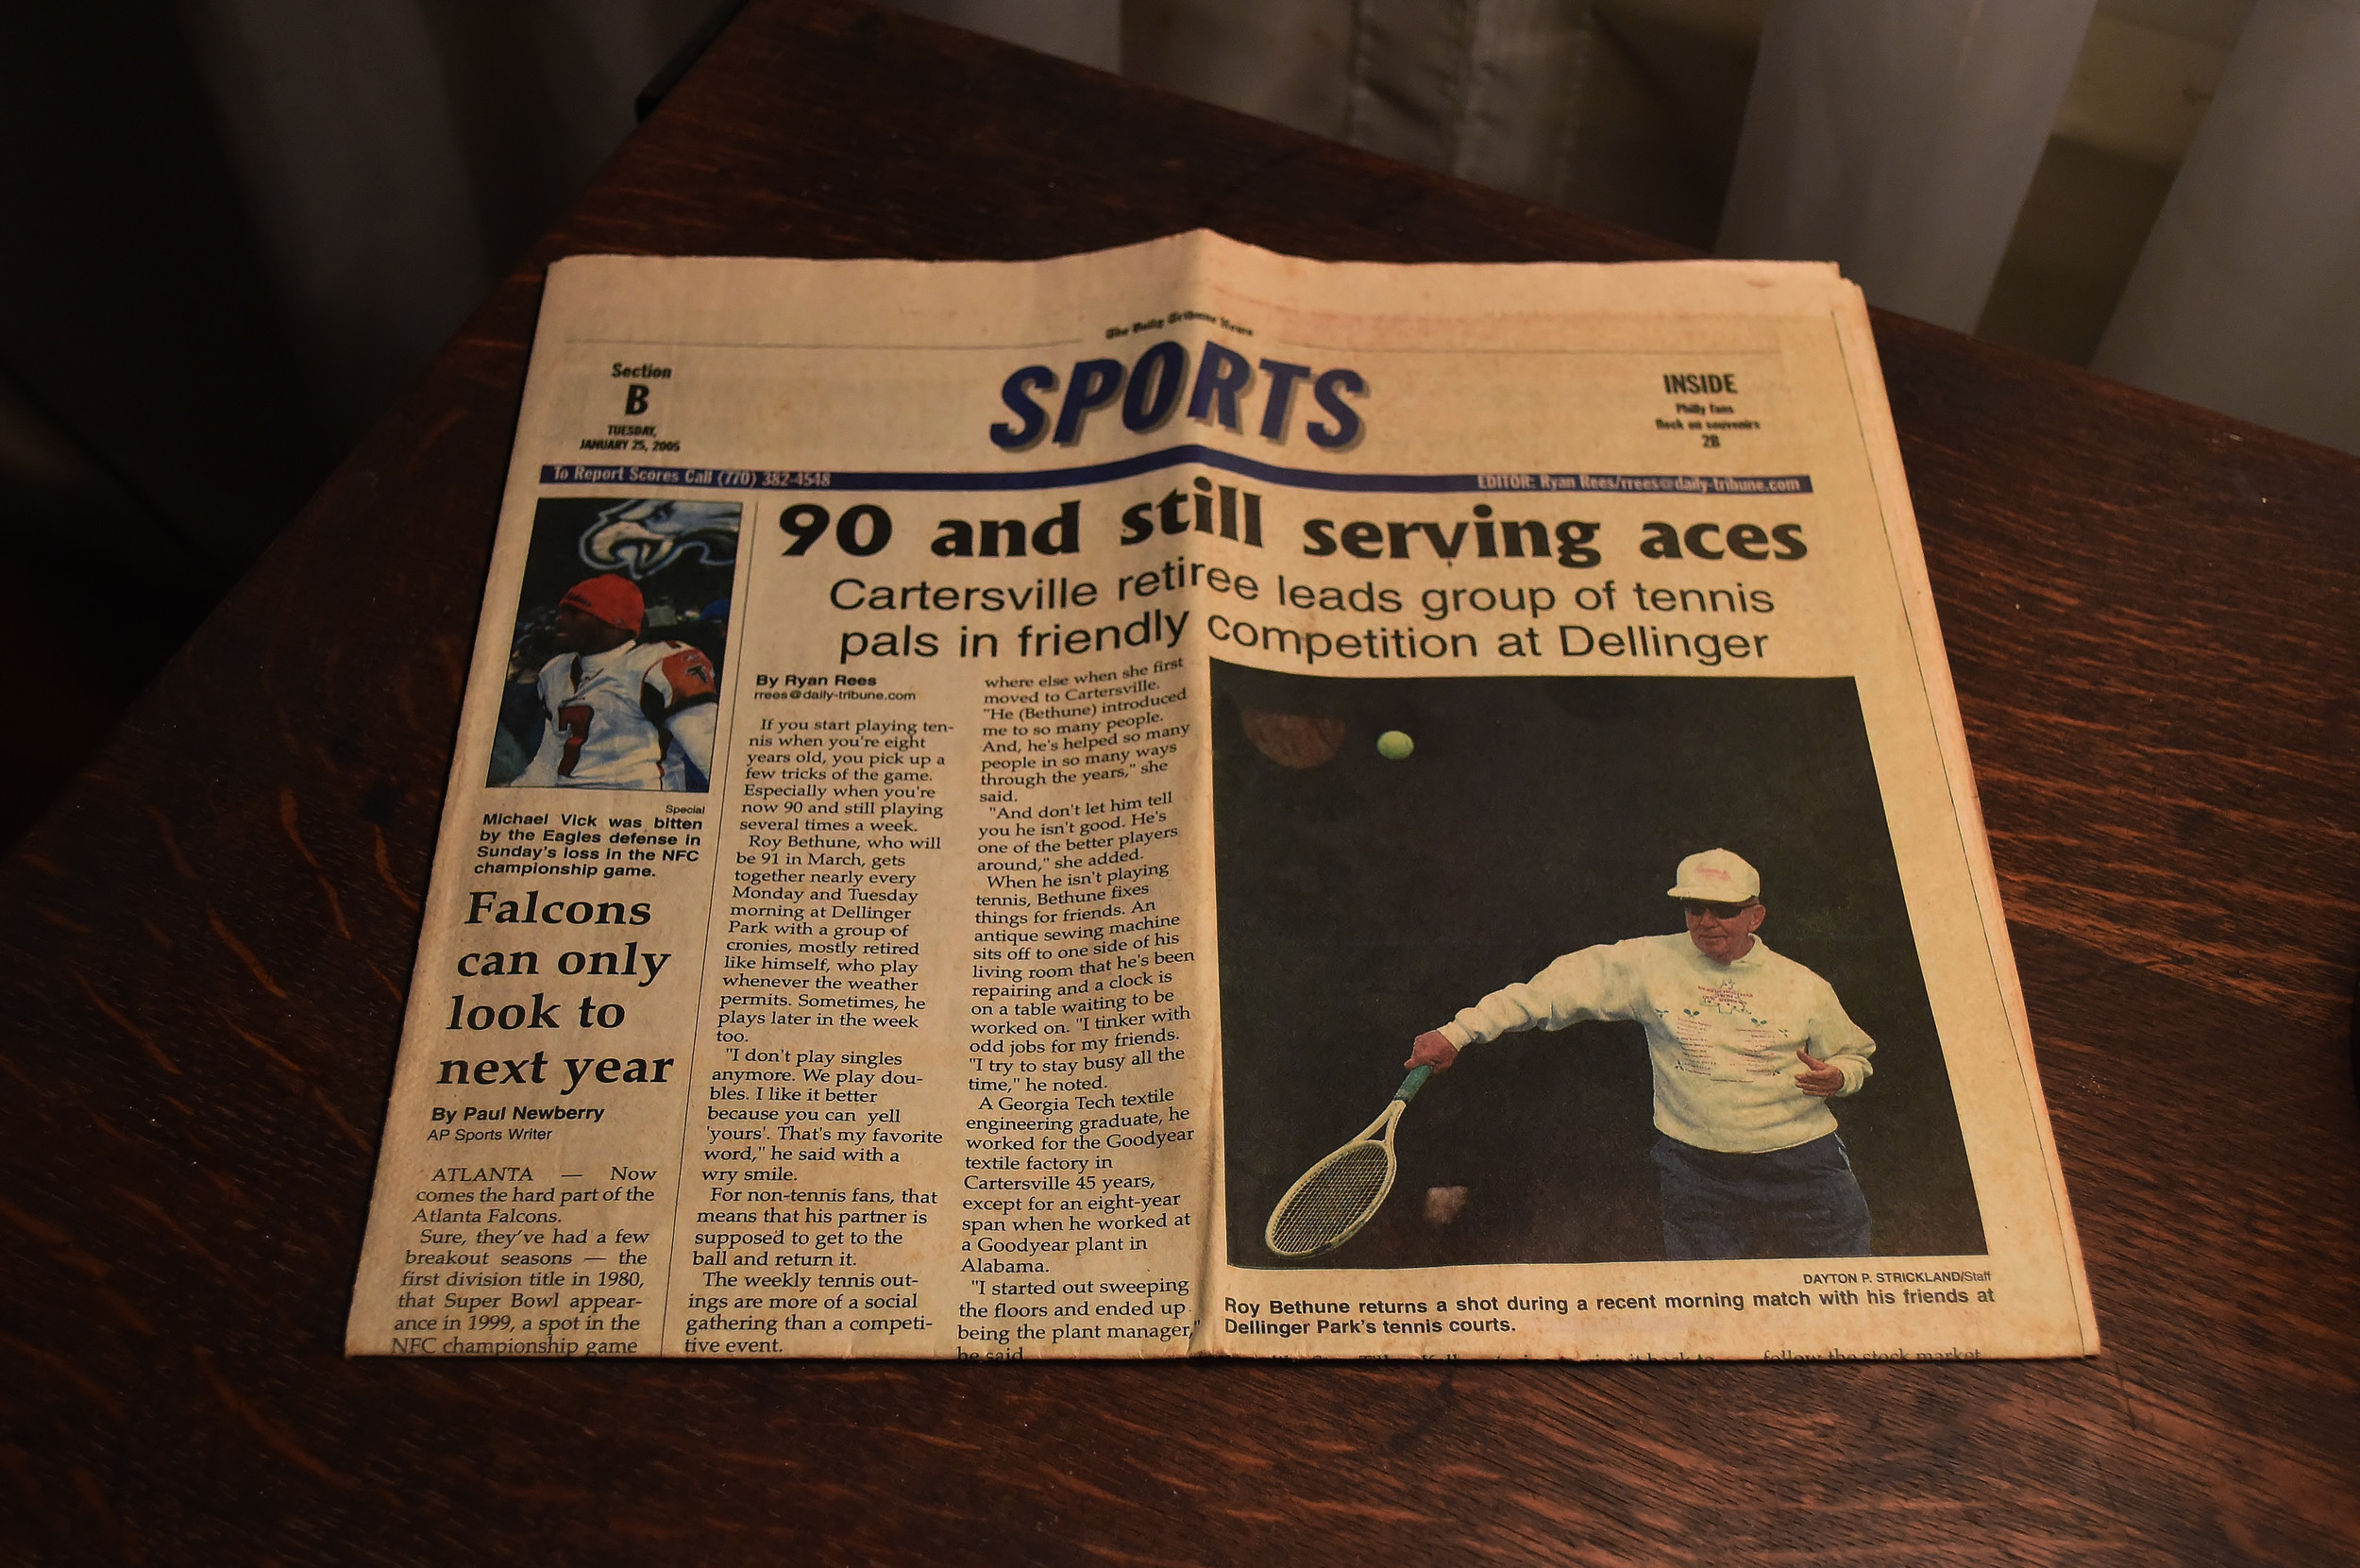 A January 2005 article in The Daily Tribune News about Bethune's tennis-playing days into his 90s.